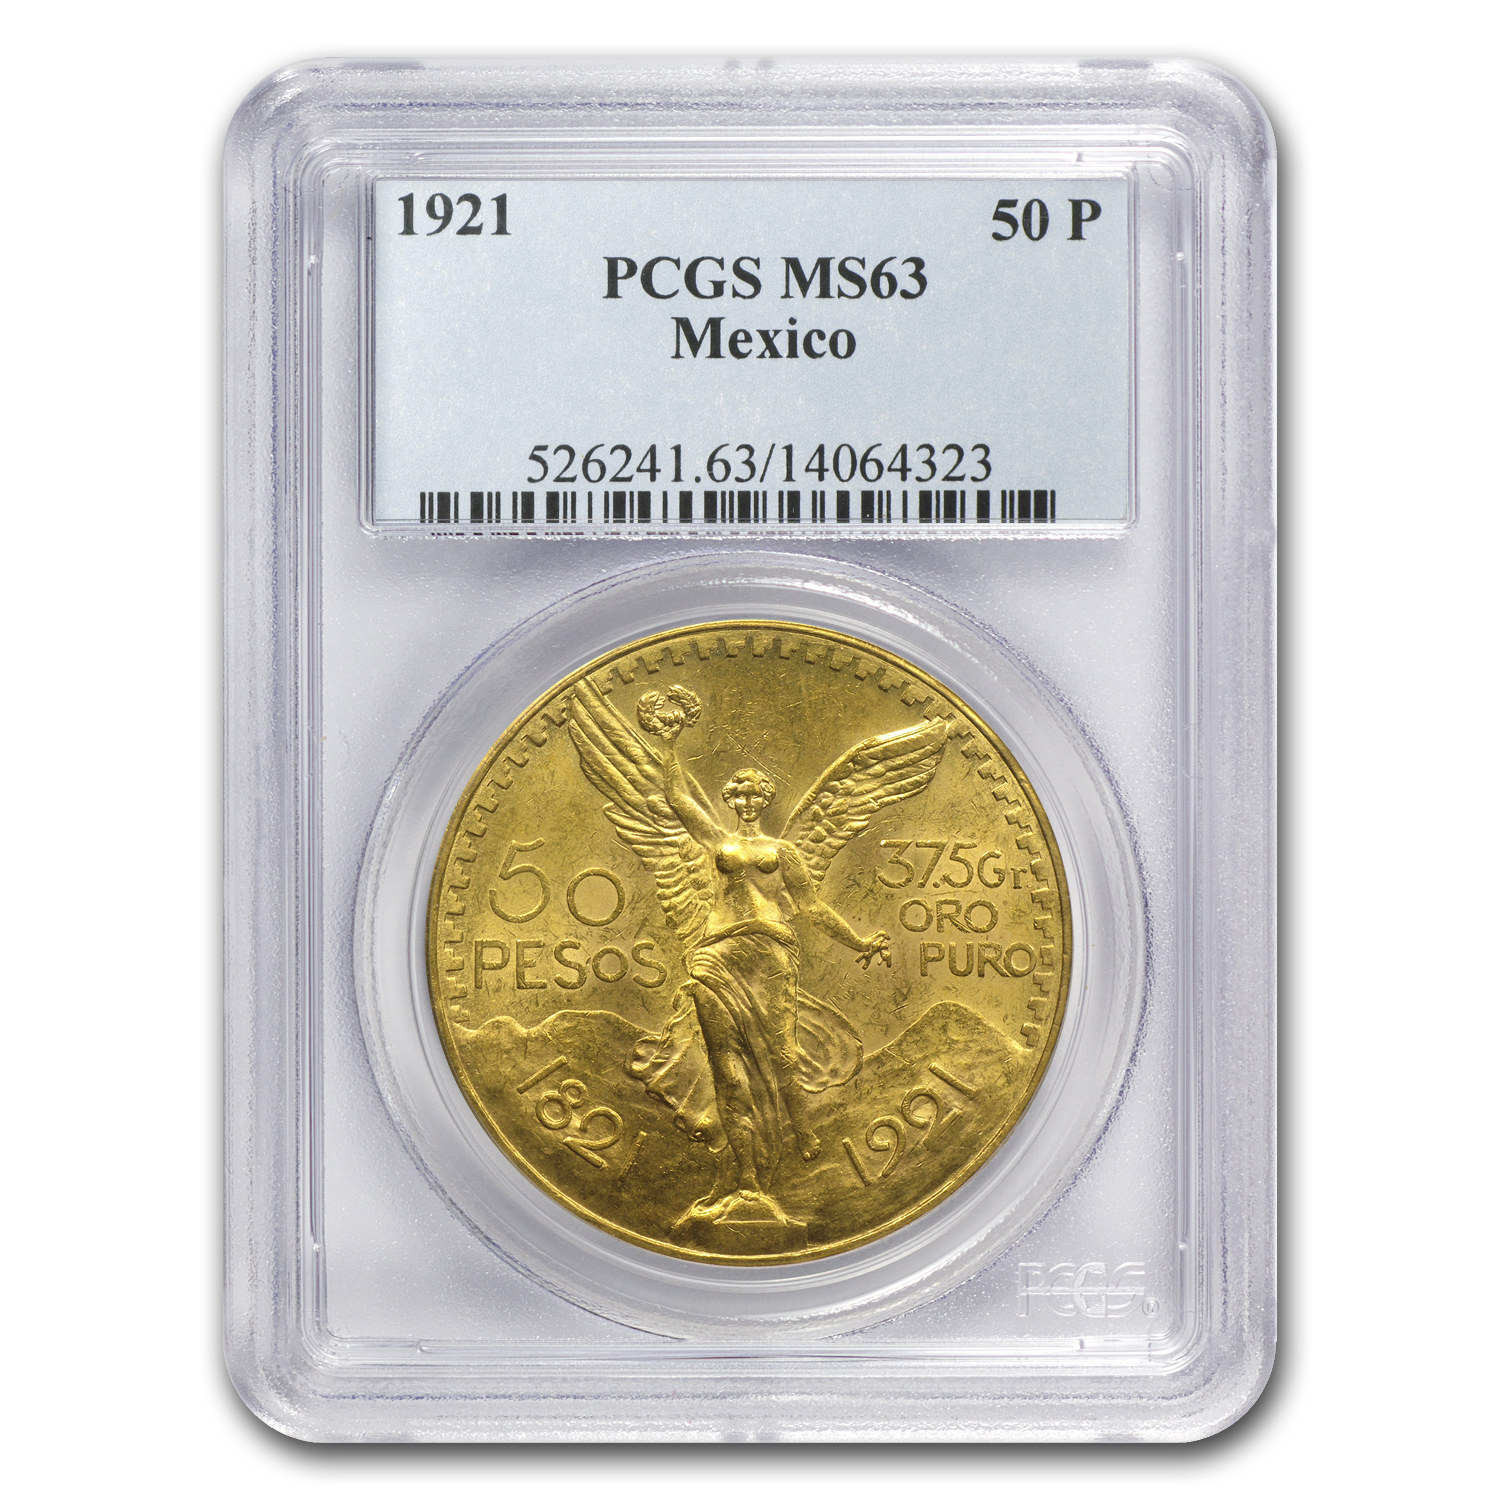 1921 Mexico Gold 50 Pesos MS-63 PCGS